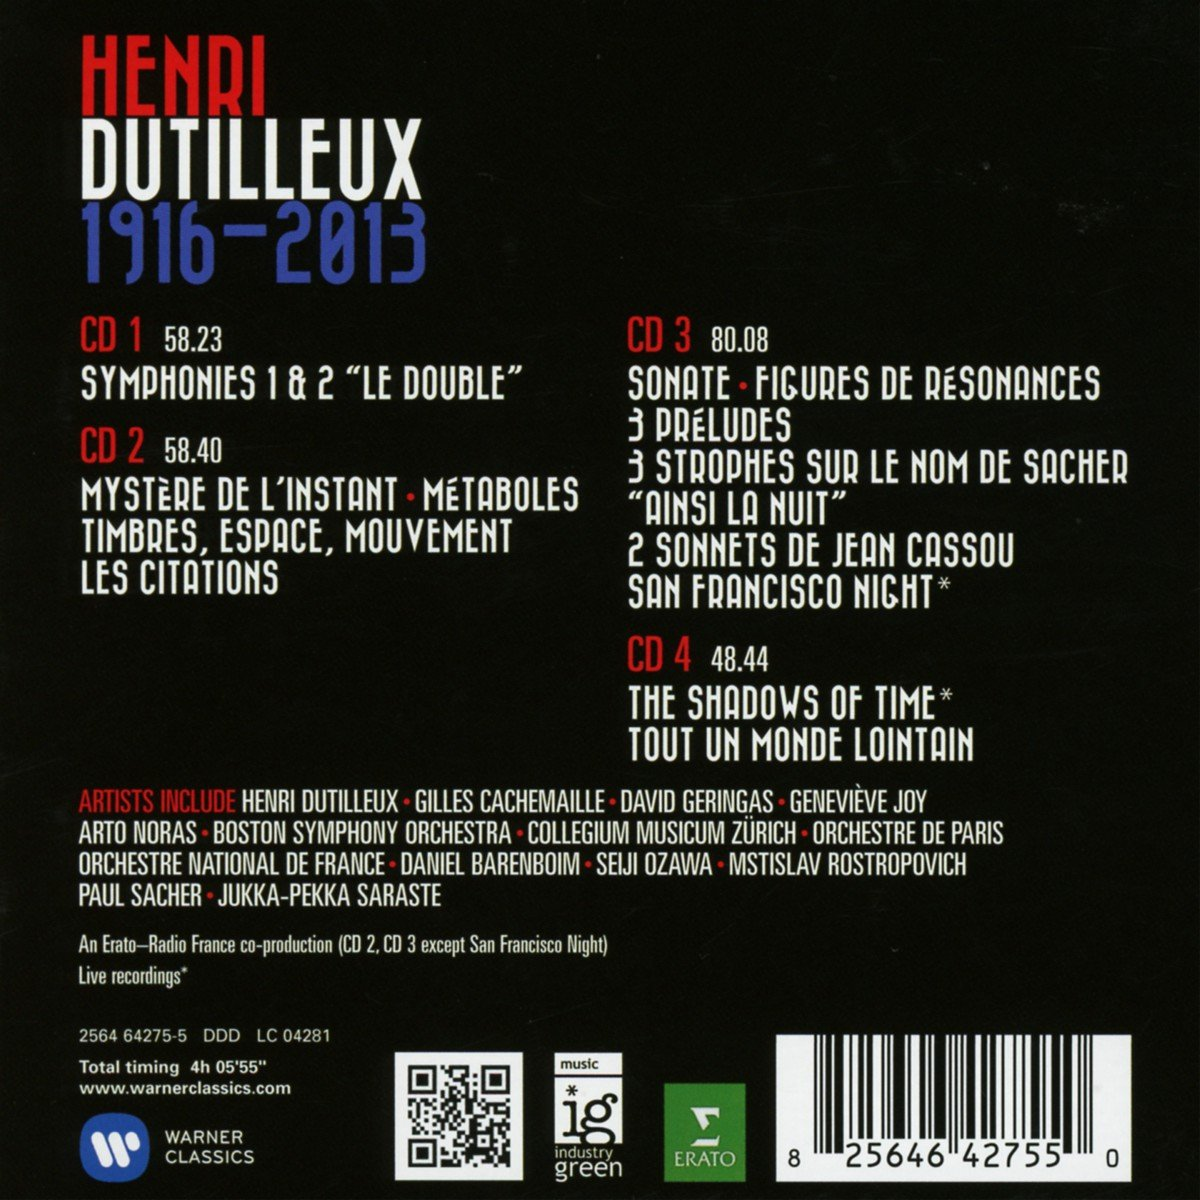 Dutilleux-Oeuvres orchestrales - Page 2 71FLr3Xi4bL._SL1200_